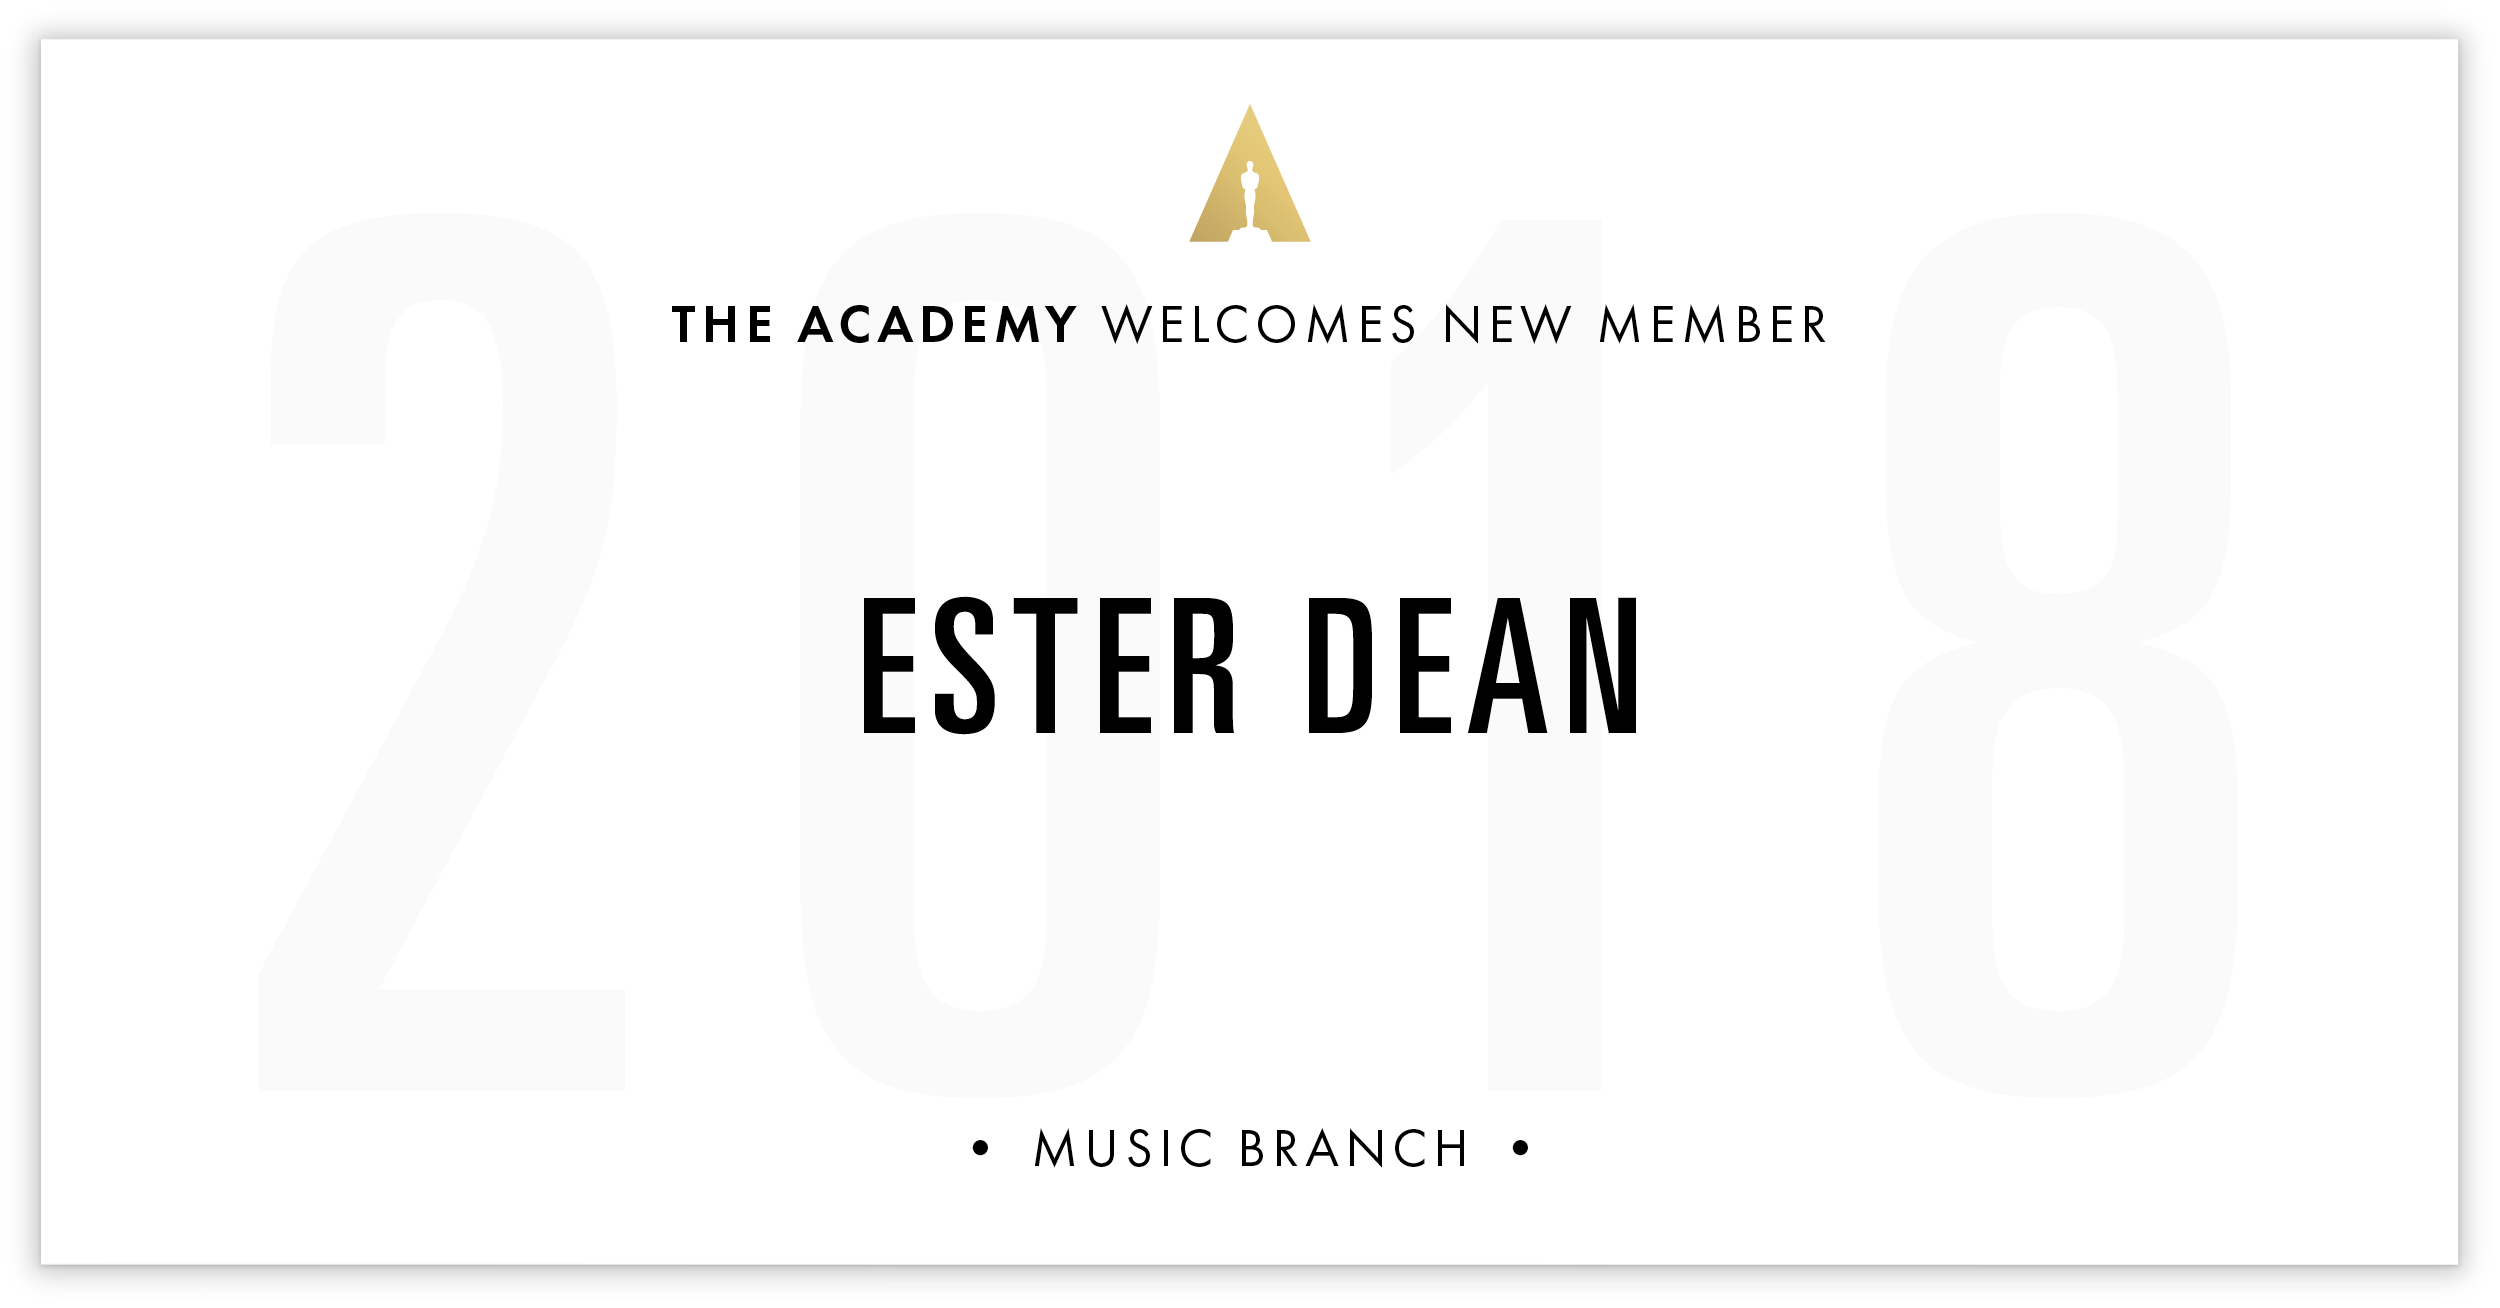 Ester Dean is invited!